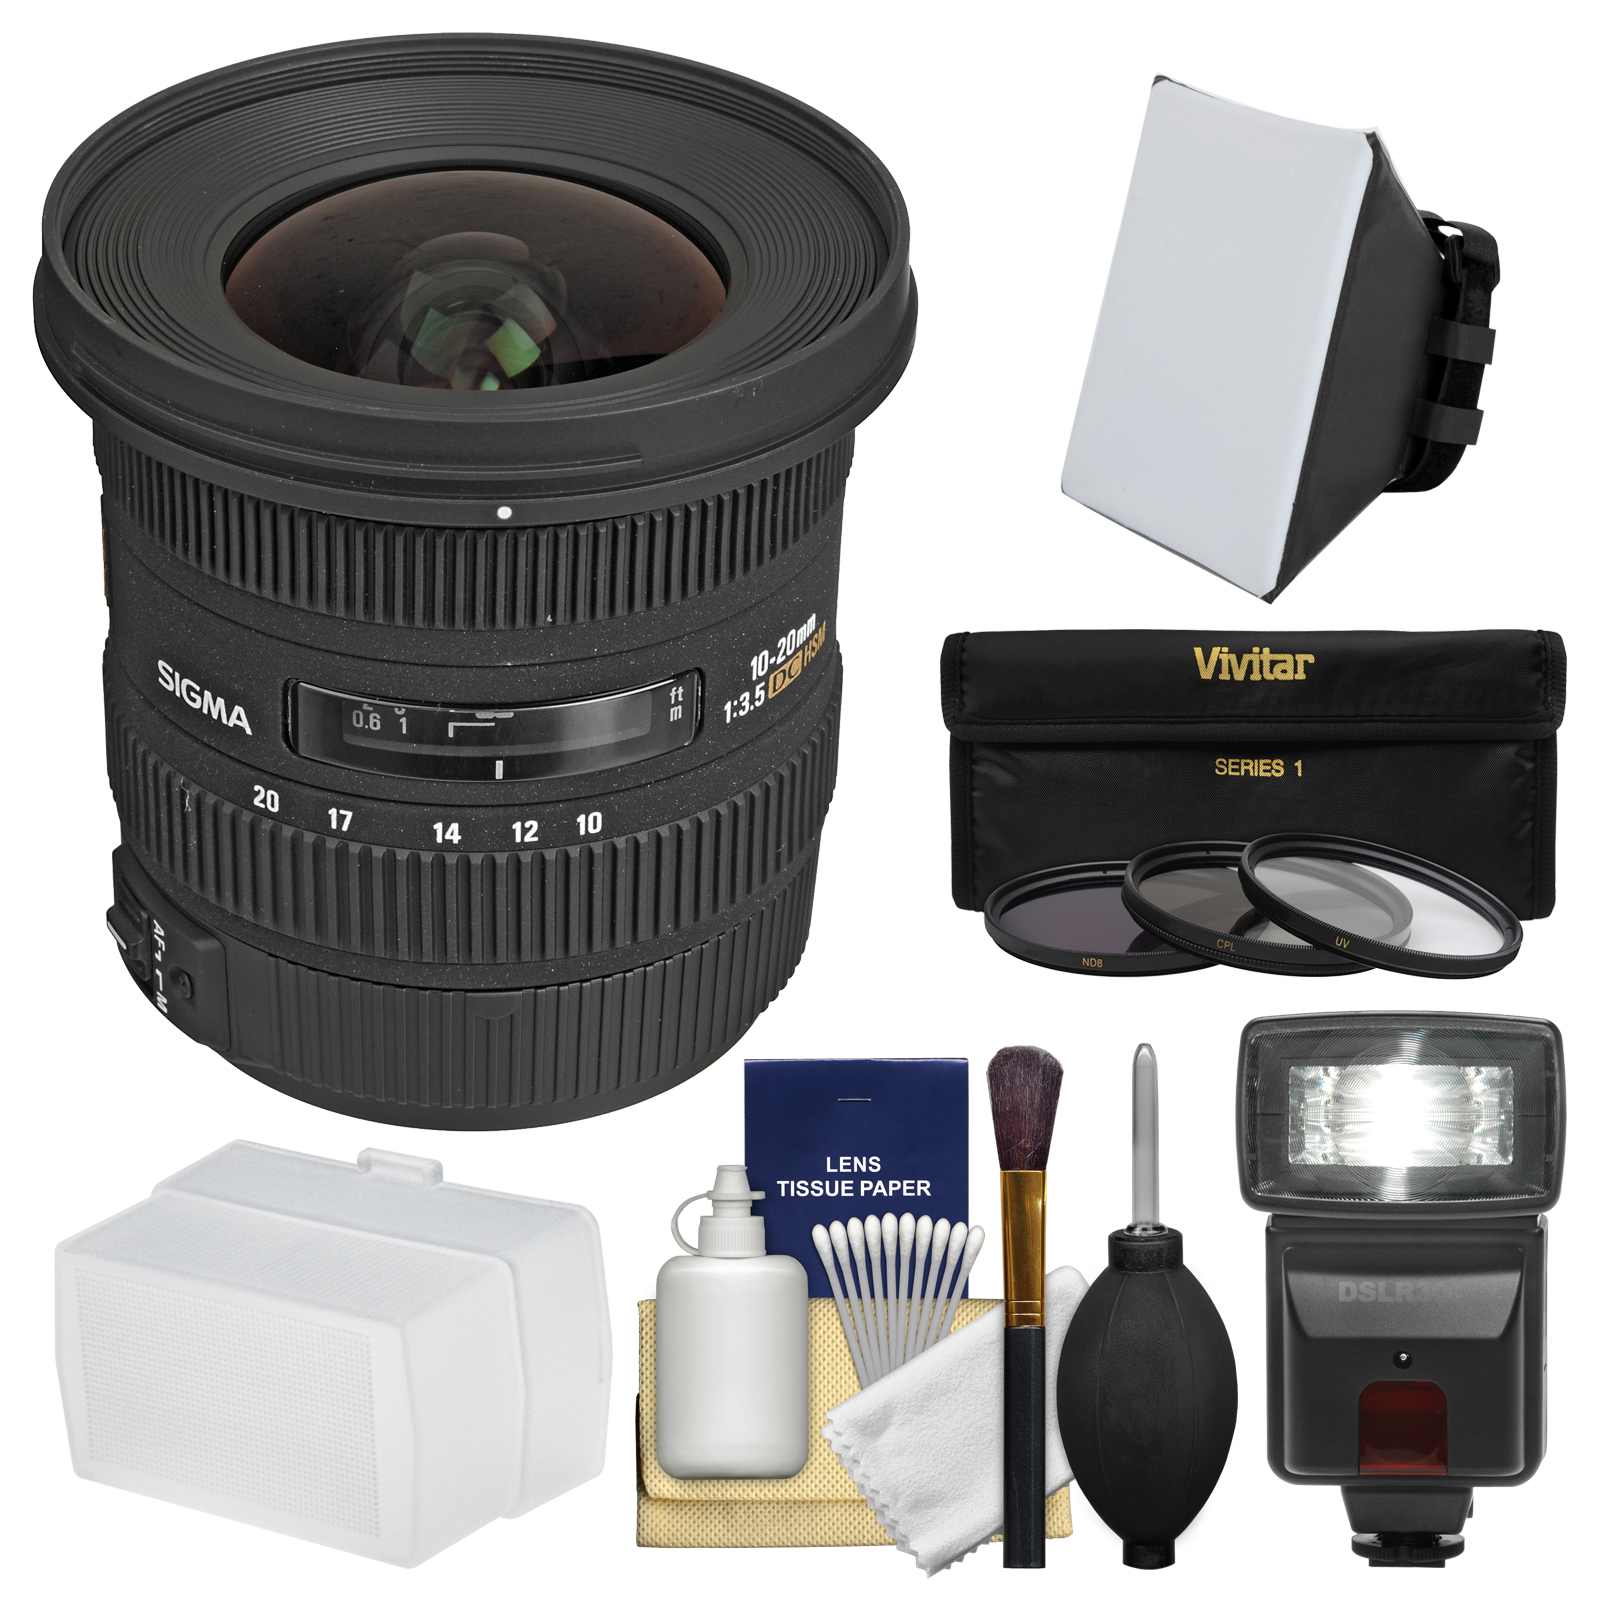 Sigma 10-20mm f/3.5 EX DC HSM Zoom Lens with Flash   Soft Box   Bounce Diffuser   3 Filters Kit for Canon EOS DSLR Cameras